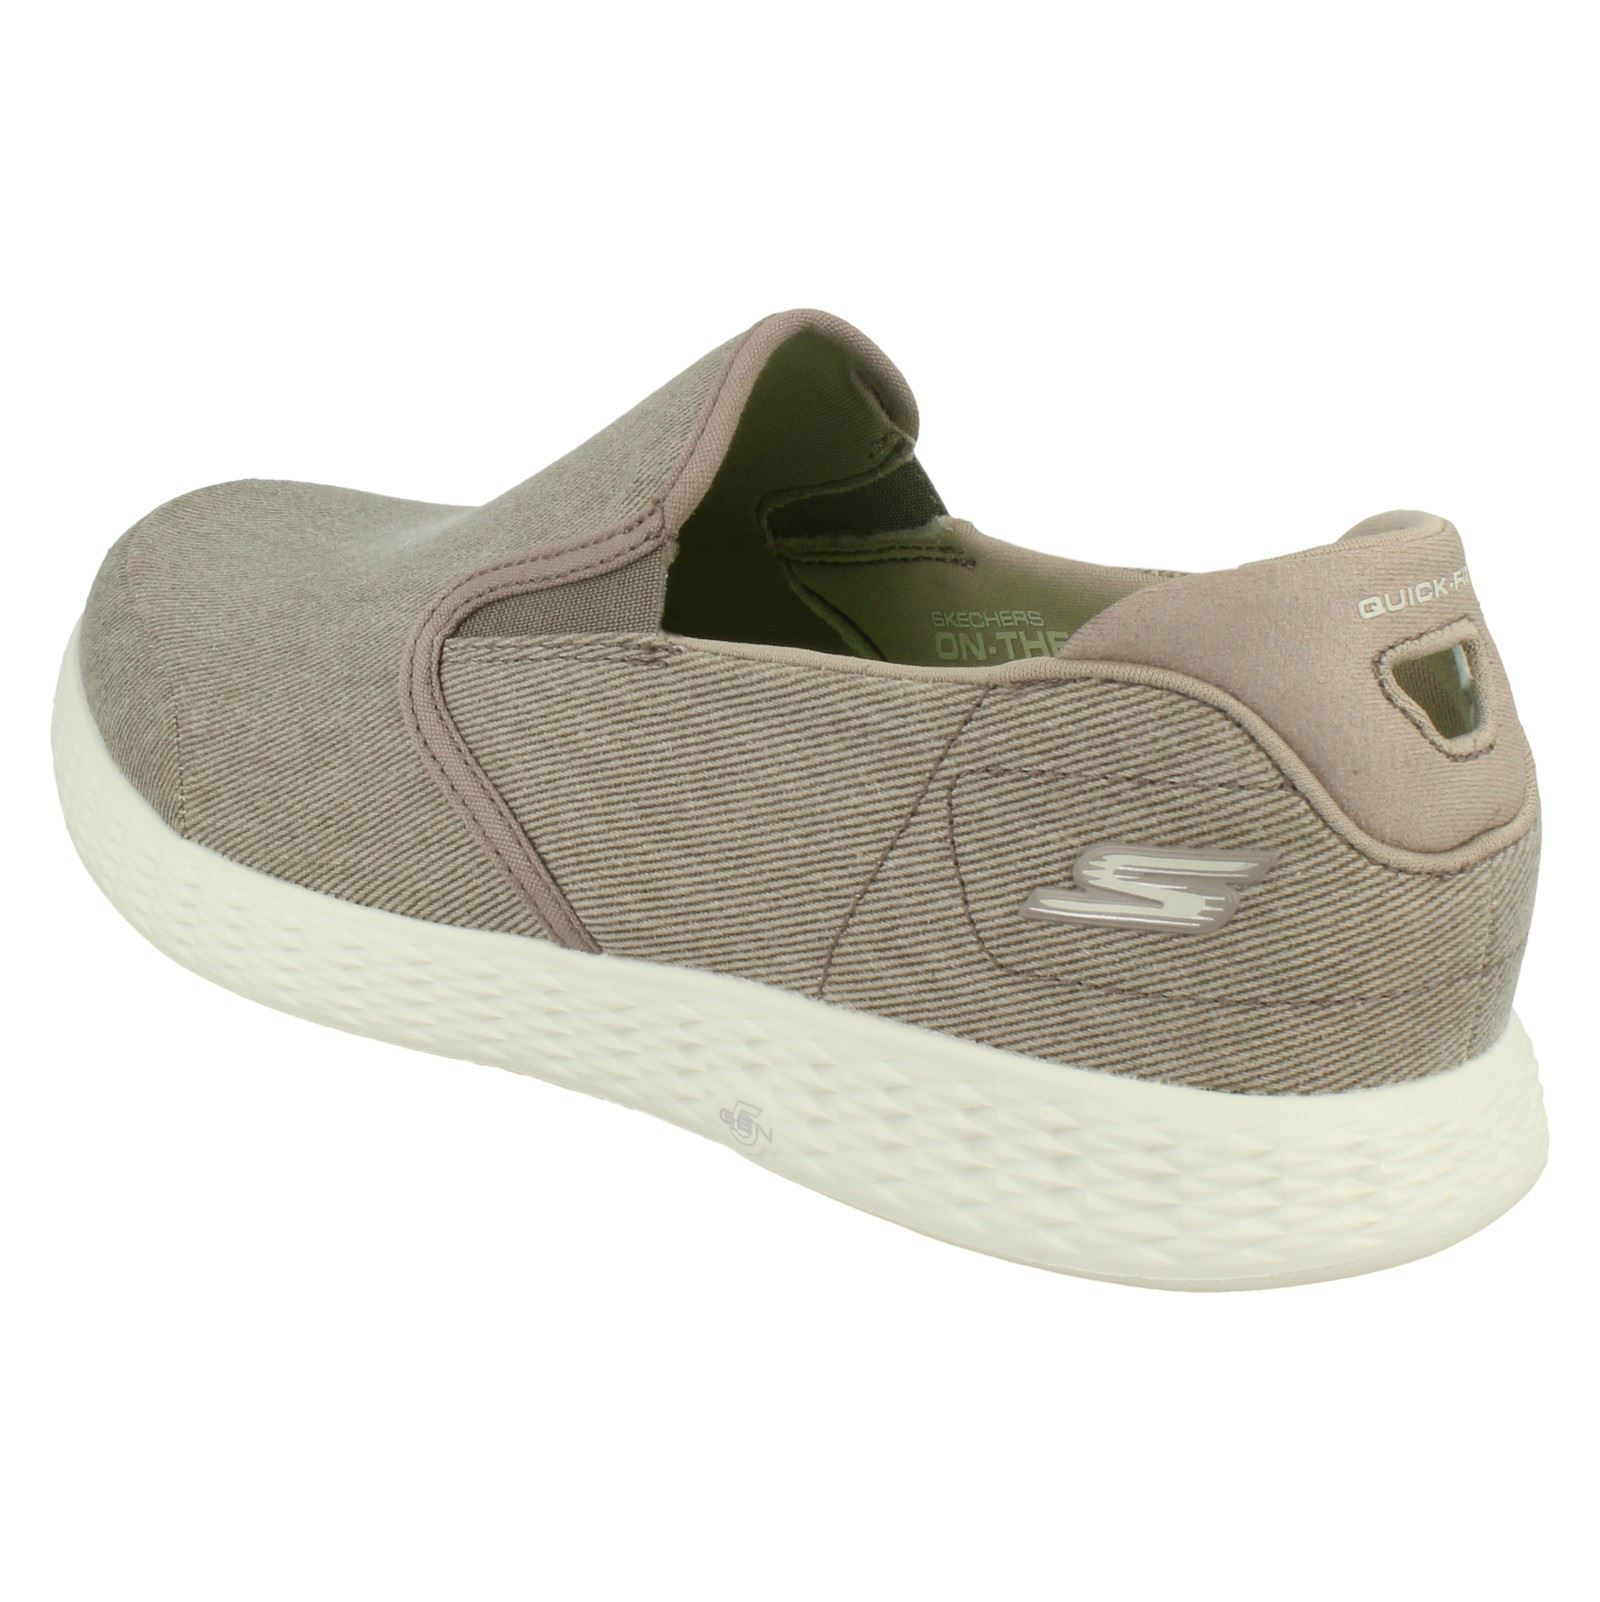 Men-Skechers-On-The-Go-Glide-Victorious-53781-Trainers thumbnail 8